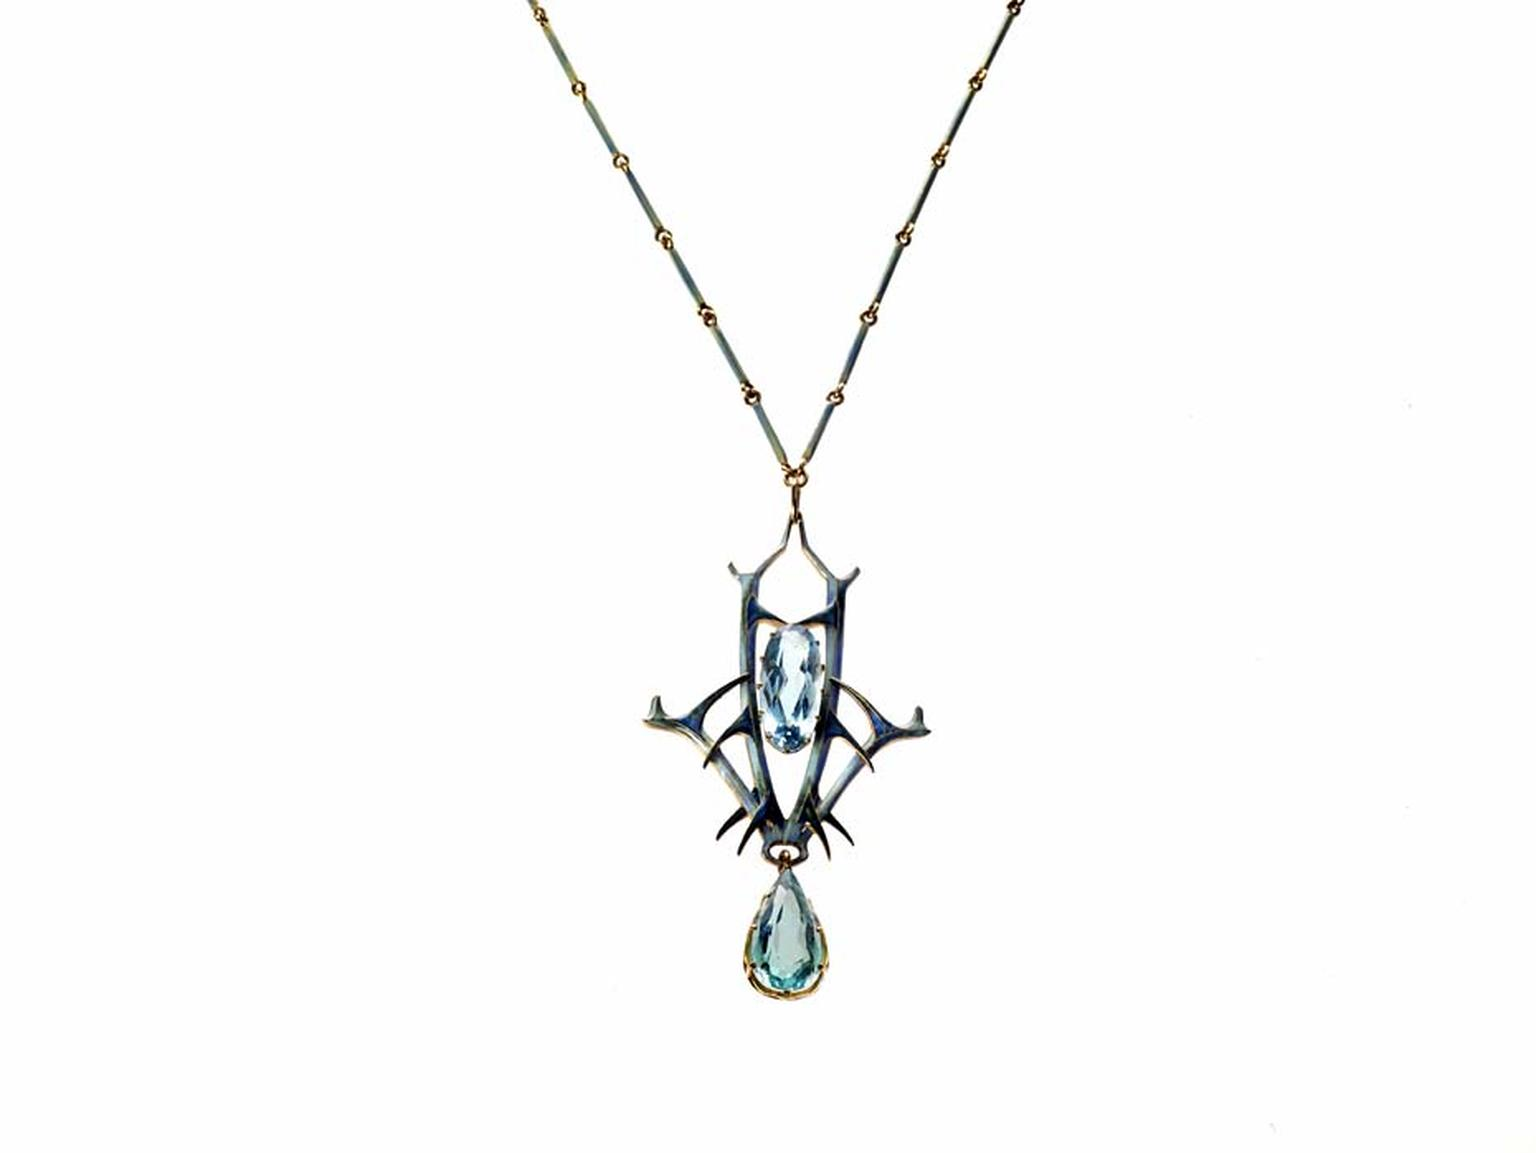 René Lalique made his name as one of France's foremost Art Nouveau jewellery designers and his jewels often featured aquamarines, such as this aquamarine pendant that is currently on display as part of the Maker & Muse exhibition at the Driehaus Museum in